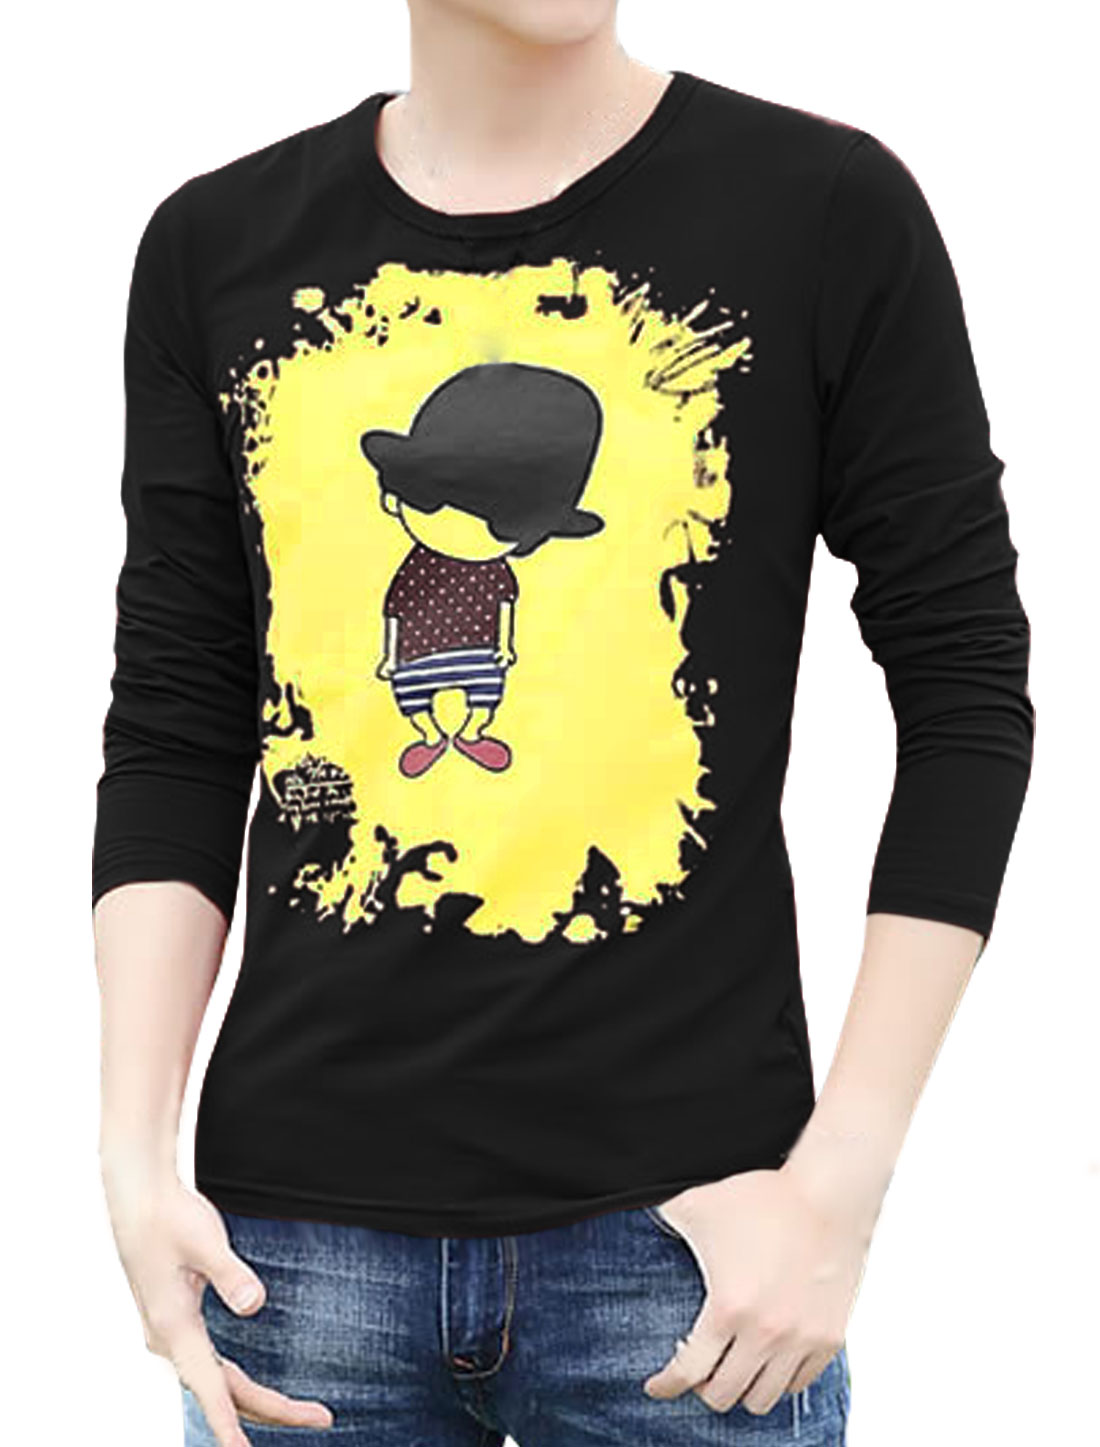 Men Long Sleeves Cartoon Slim Fit Tee Shirt Black S